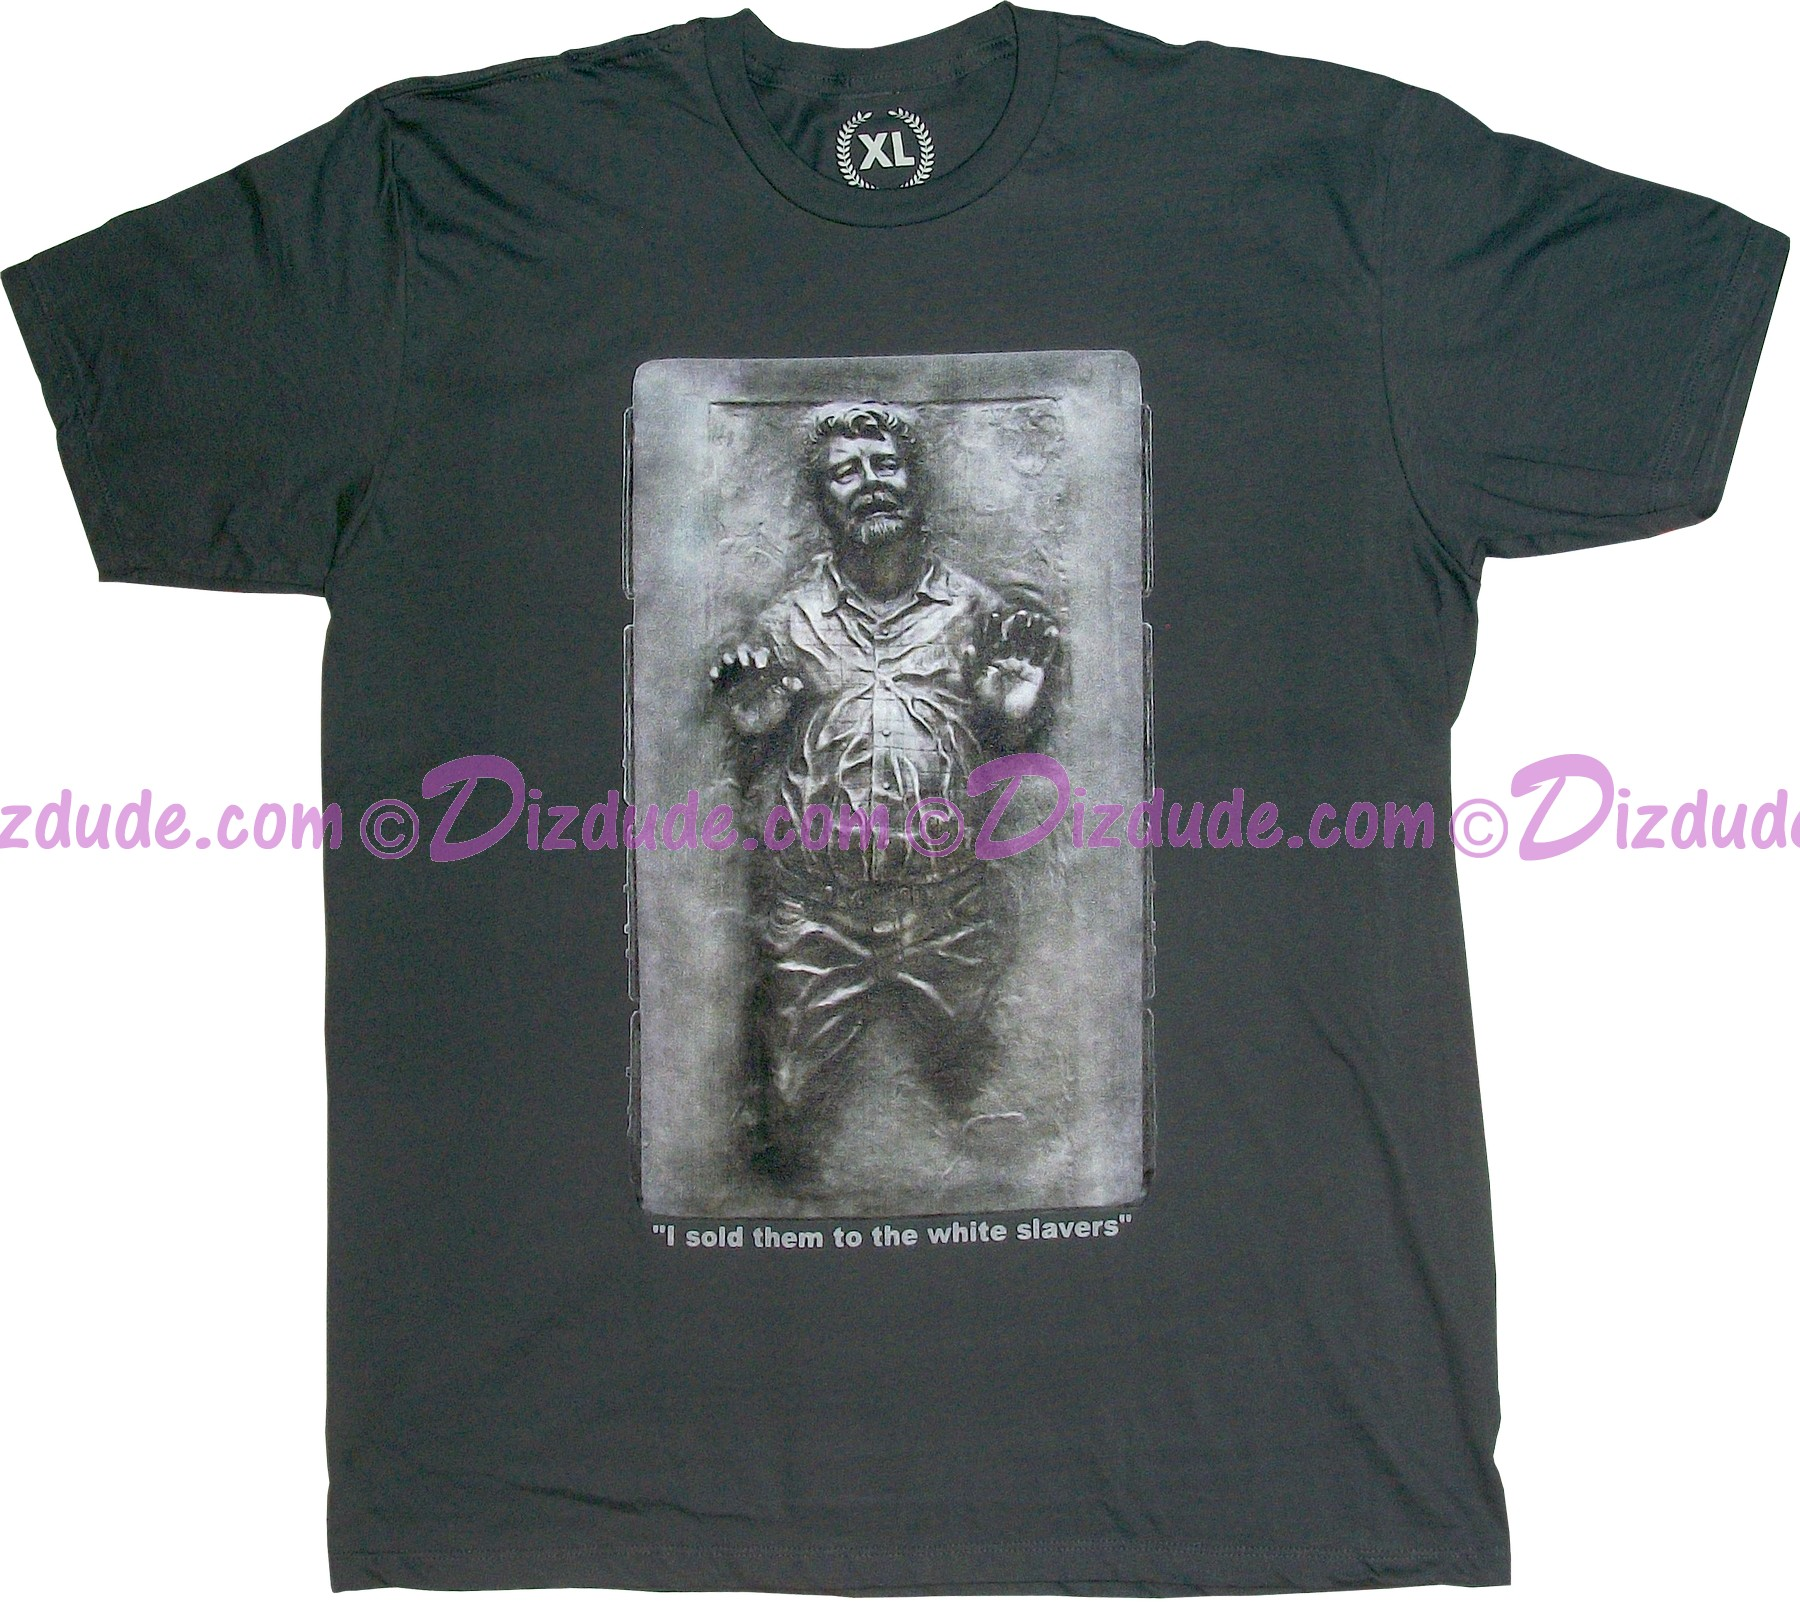 "Star Wars Yoda - Lucas in Carbonite With Text ""I sold them to the white slavers""Fantasy T-shirt (Tshirt, T shirt or Tee) © Dizdude.com"